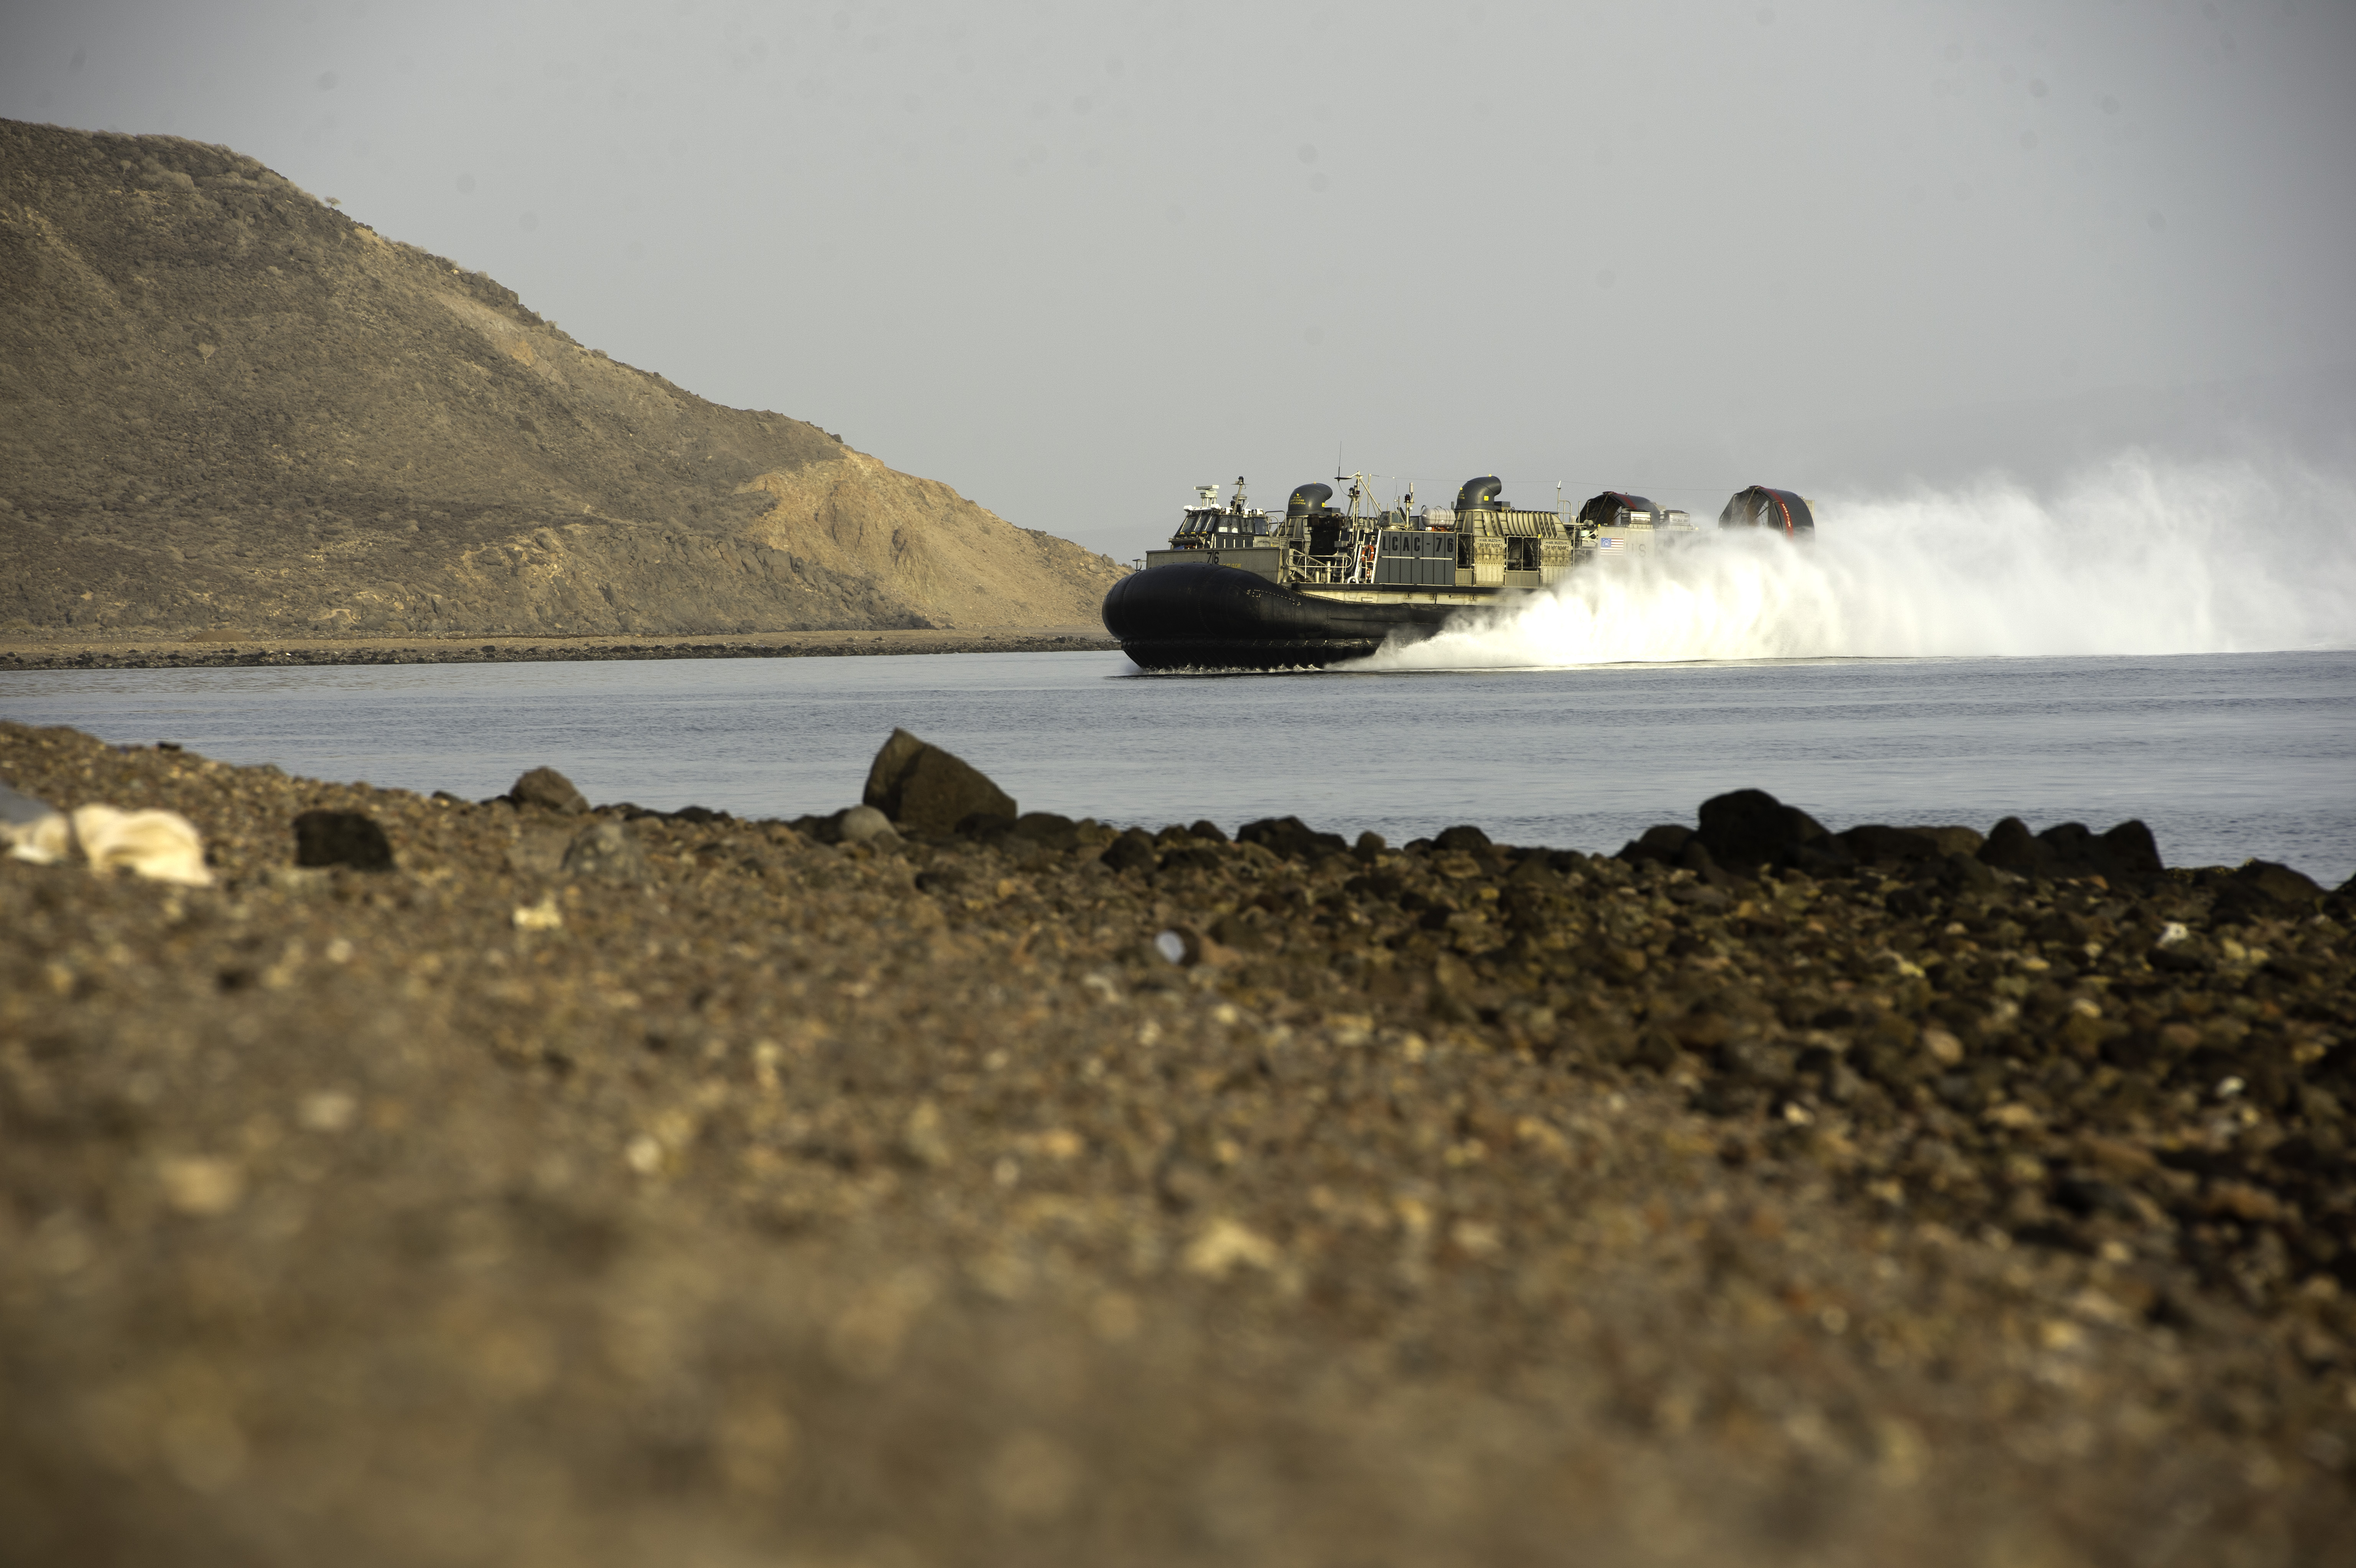 A U.S. Navy Landing Craft Air Cushion (LCAC) approaches a landing zone at Arta Beach, Djibouti, July 20, 2015. The LCAC is a hovercraft used by the U.S. Navy's Assault Craft Units to transport and deliver personnel and equipment from ship to shore and across beaches and was in Djibouti as part of two week sustainment training exercise for the 15th Marine Expeditionary Unit. (U.S. Air Force photo by Staff Sgt. Nathan Maysonet)